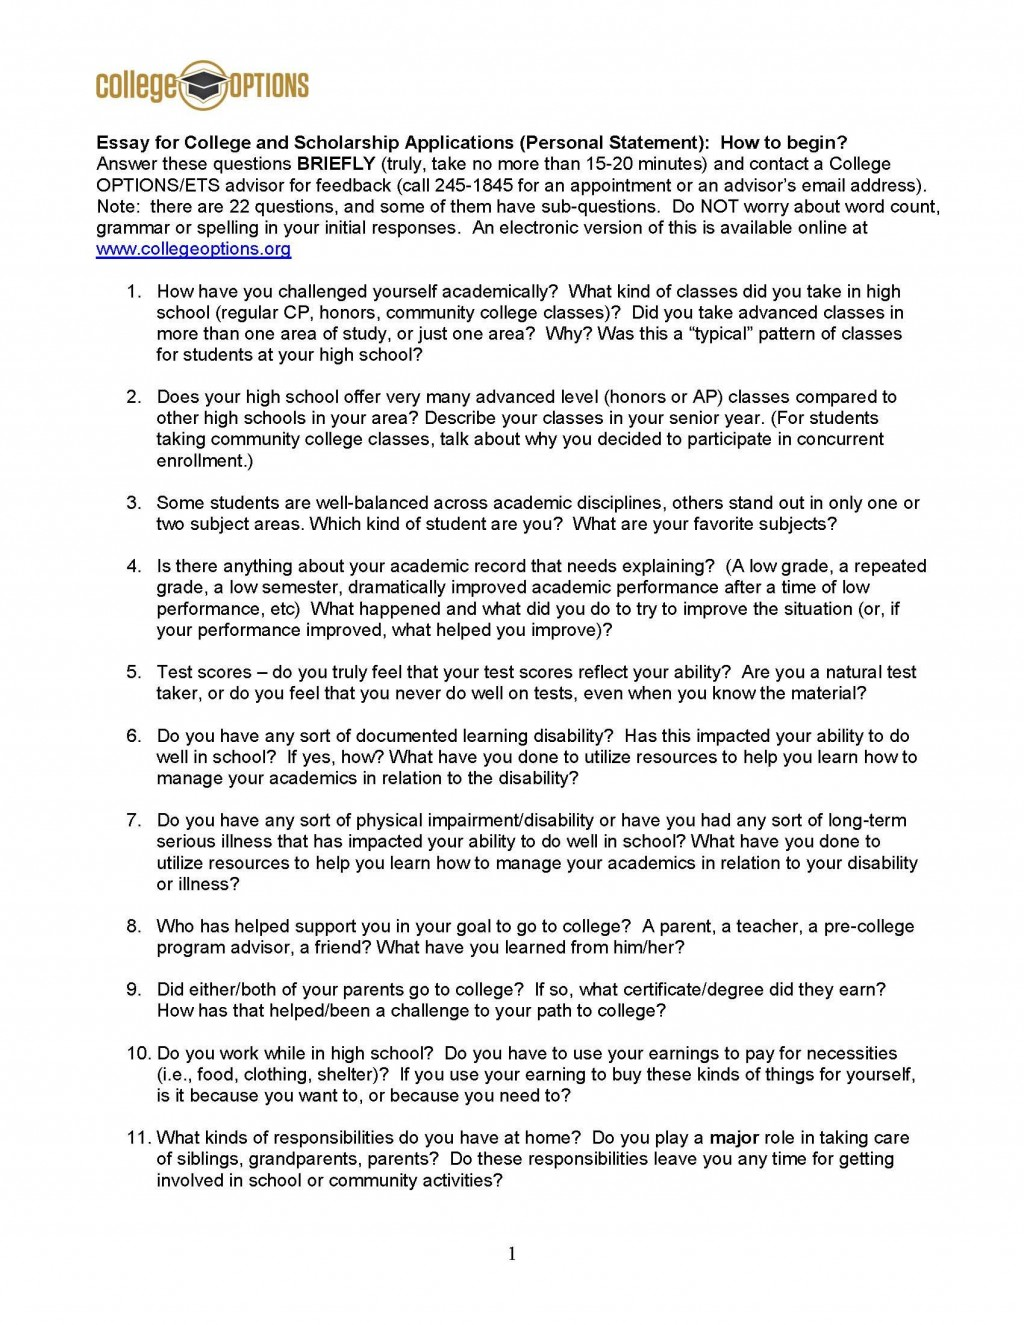 006 College Options Tips For Writing Your Scholarship Applicationy Scholarships High School Seniors In California Class Of No Short Free Example Wonderful Essay 2017 Canada Large